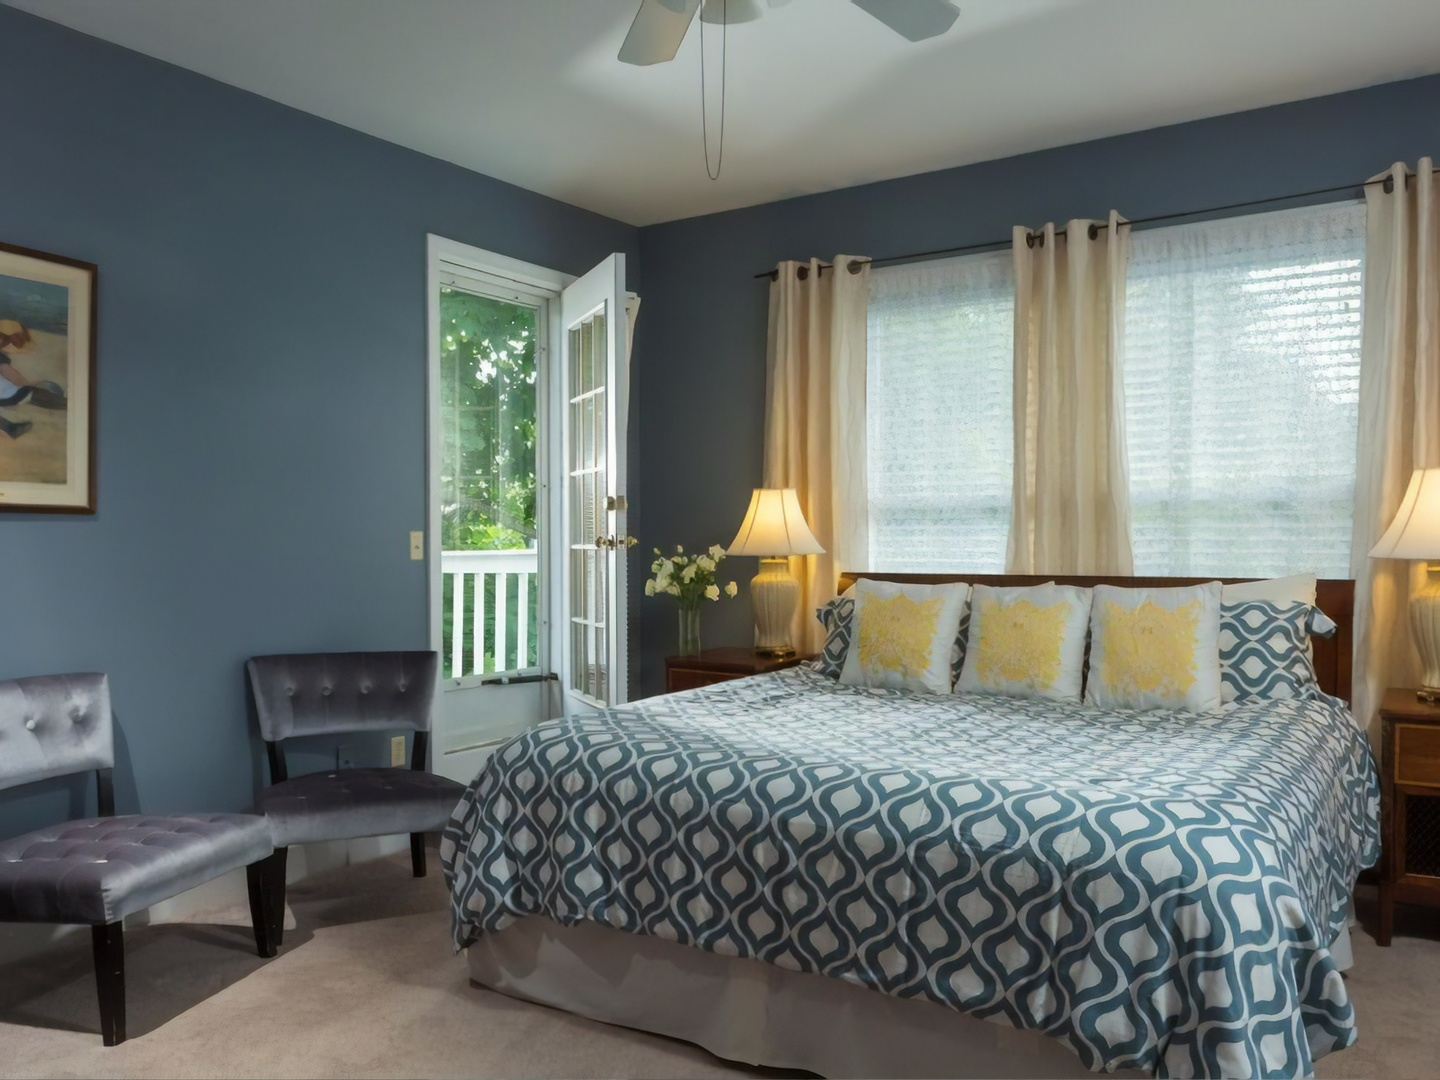 A bedroom with a large bed in a room at Beech Tree Inn & Cottage.